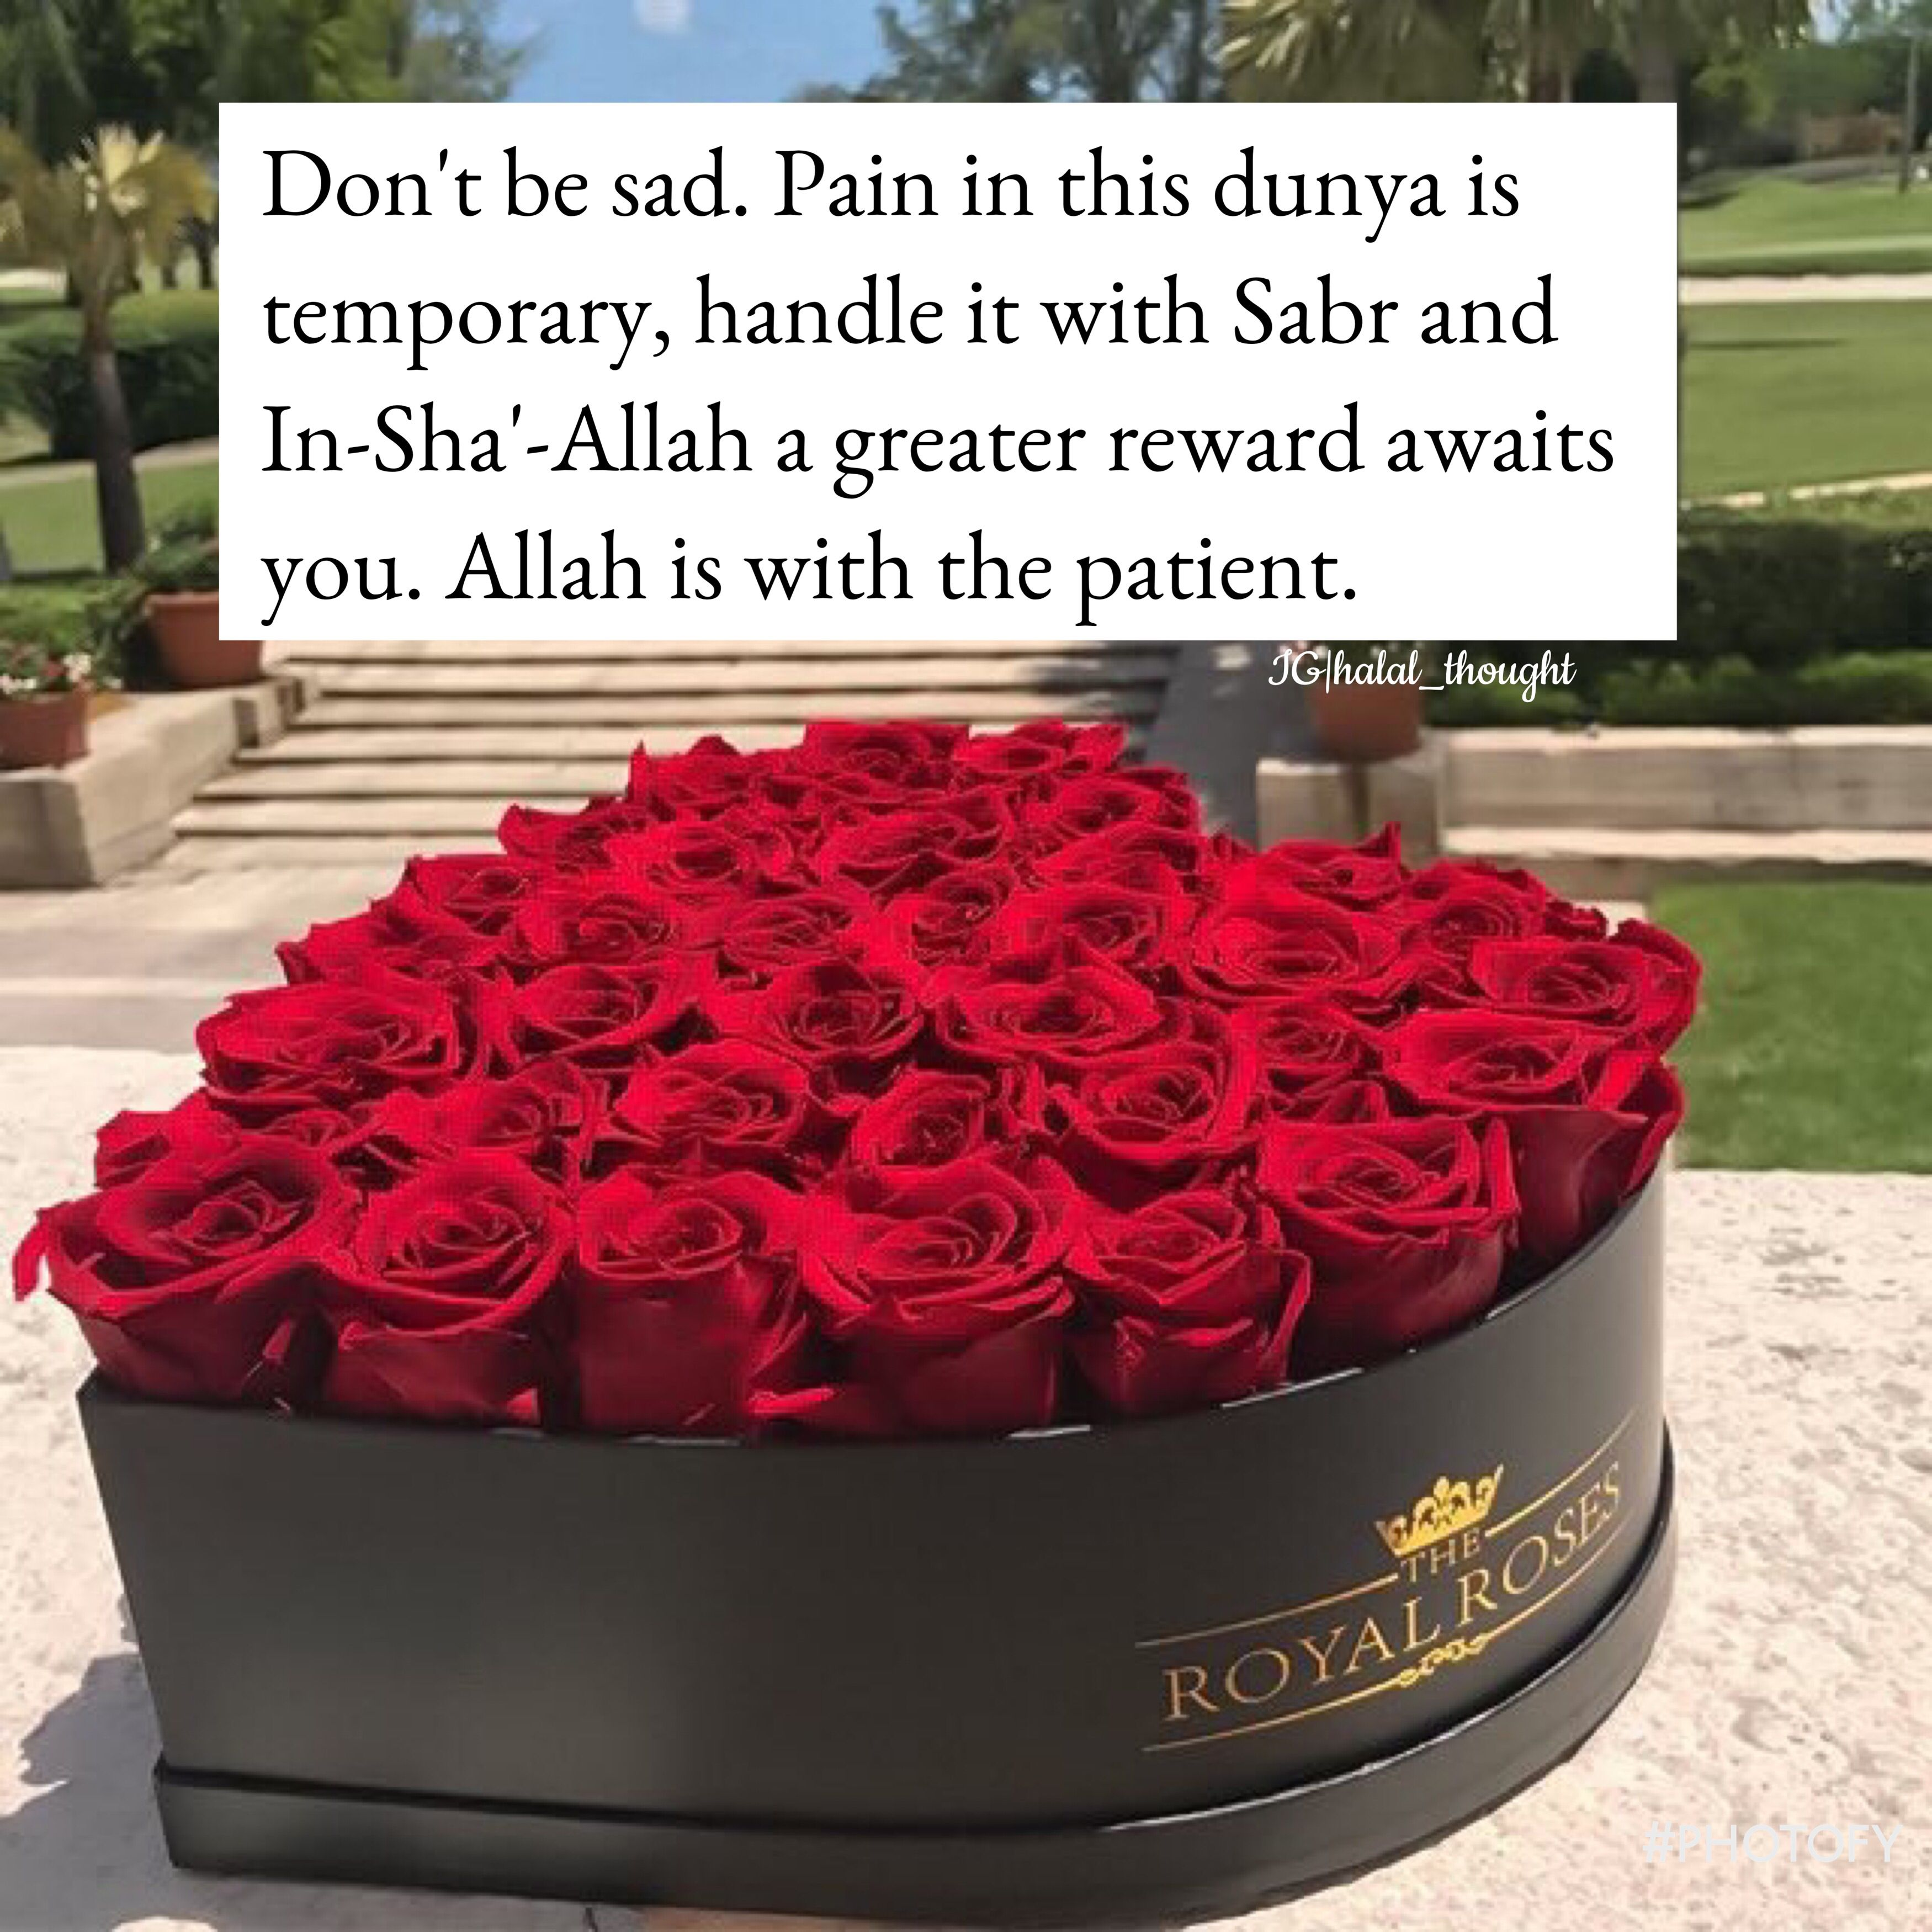 Pin By Vari Siddiqui On Islam Quotes Flower Box Gift Red Roses Flowers Delivered